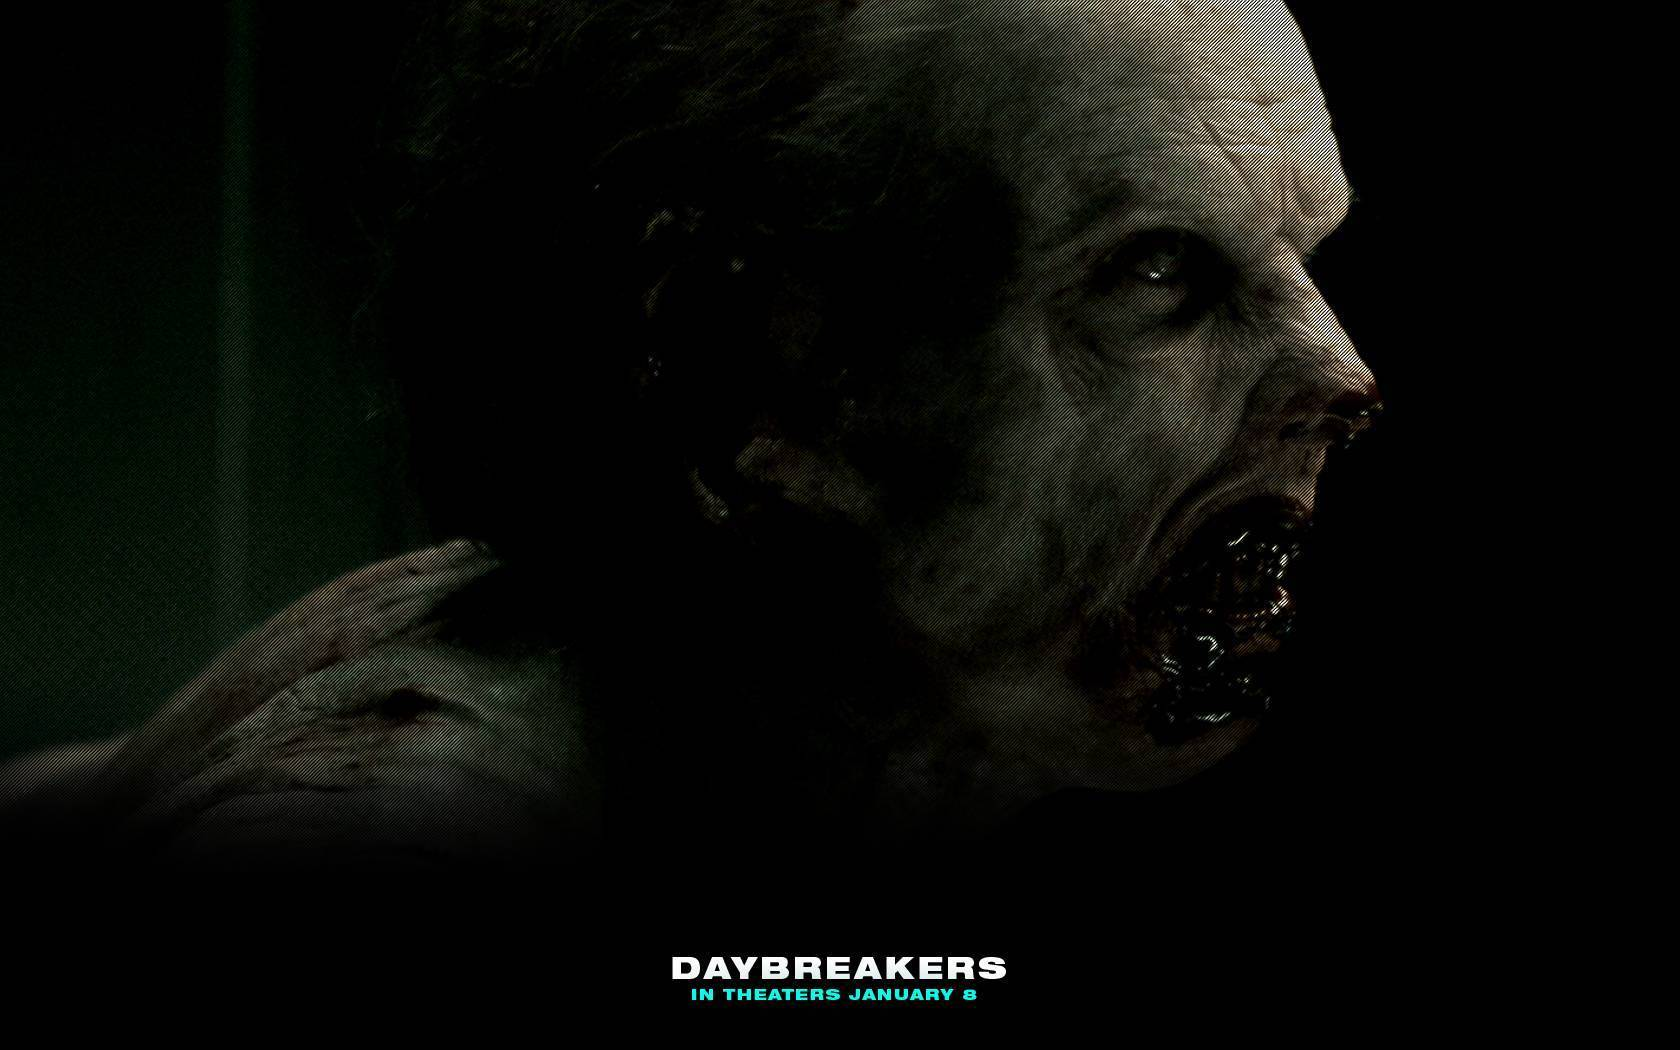 daybreakers horror movies wallpaper 9657386 fanpop